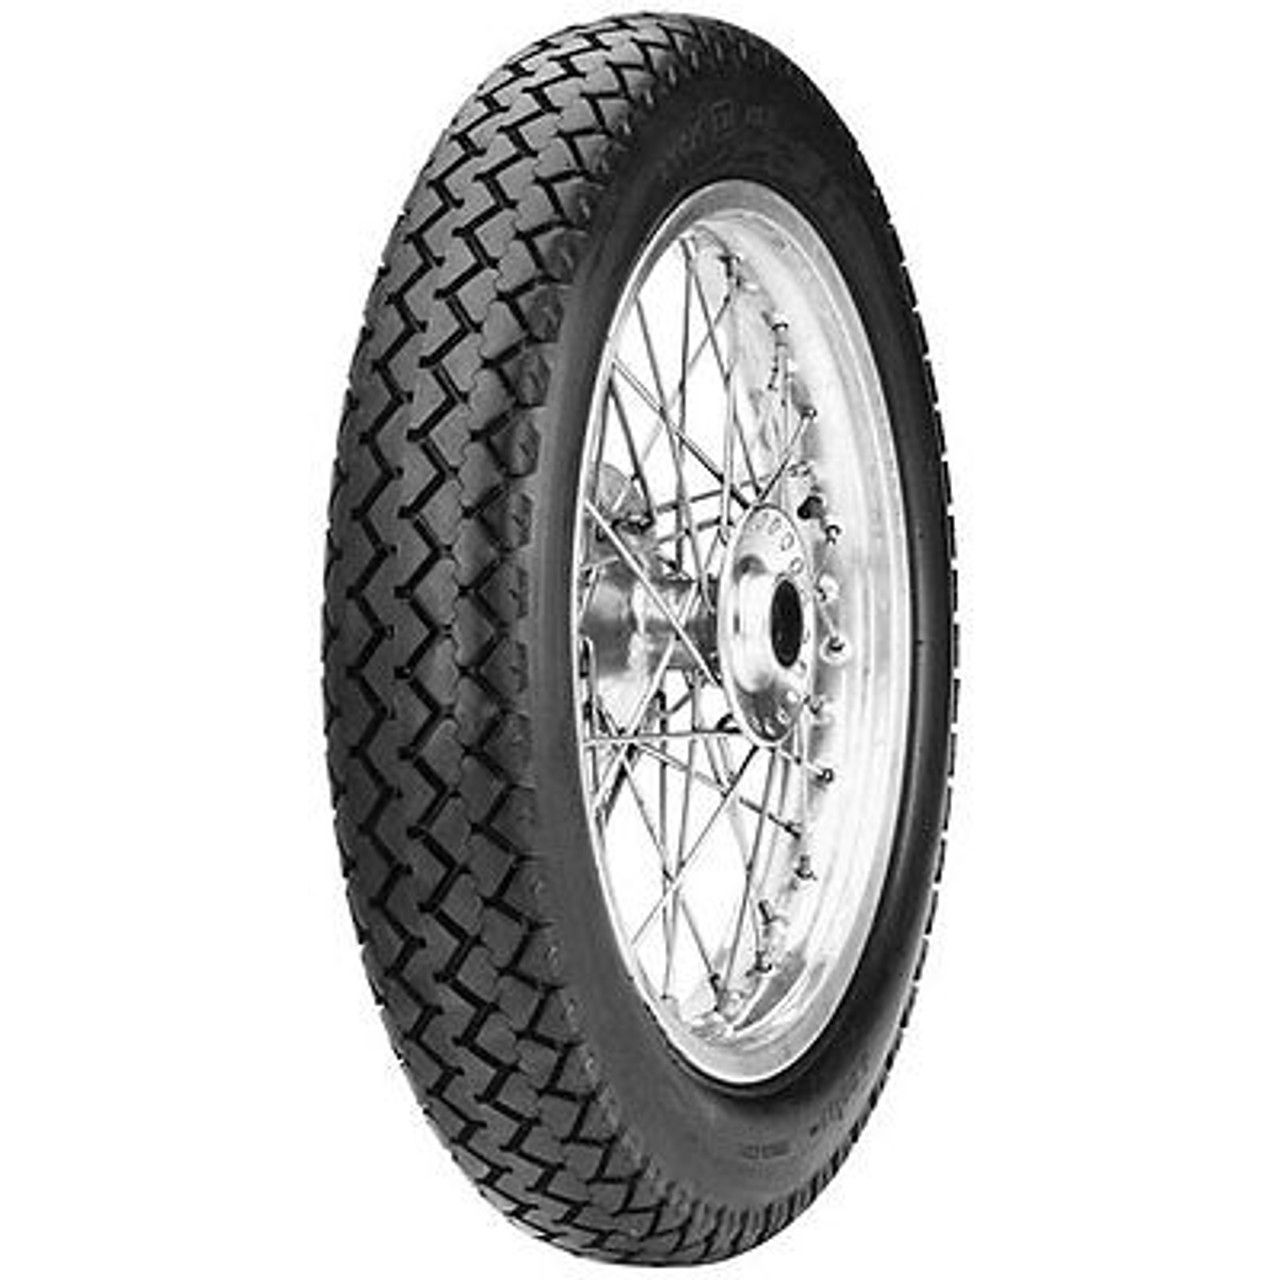 Avon Motorcycle Tires >> Avon Tyres Am7 Safety Mileage Mark 2 Rear Motorcycle Tire 4 00 18